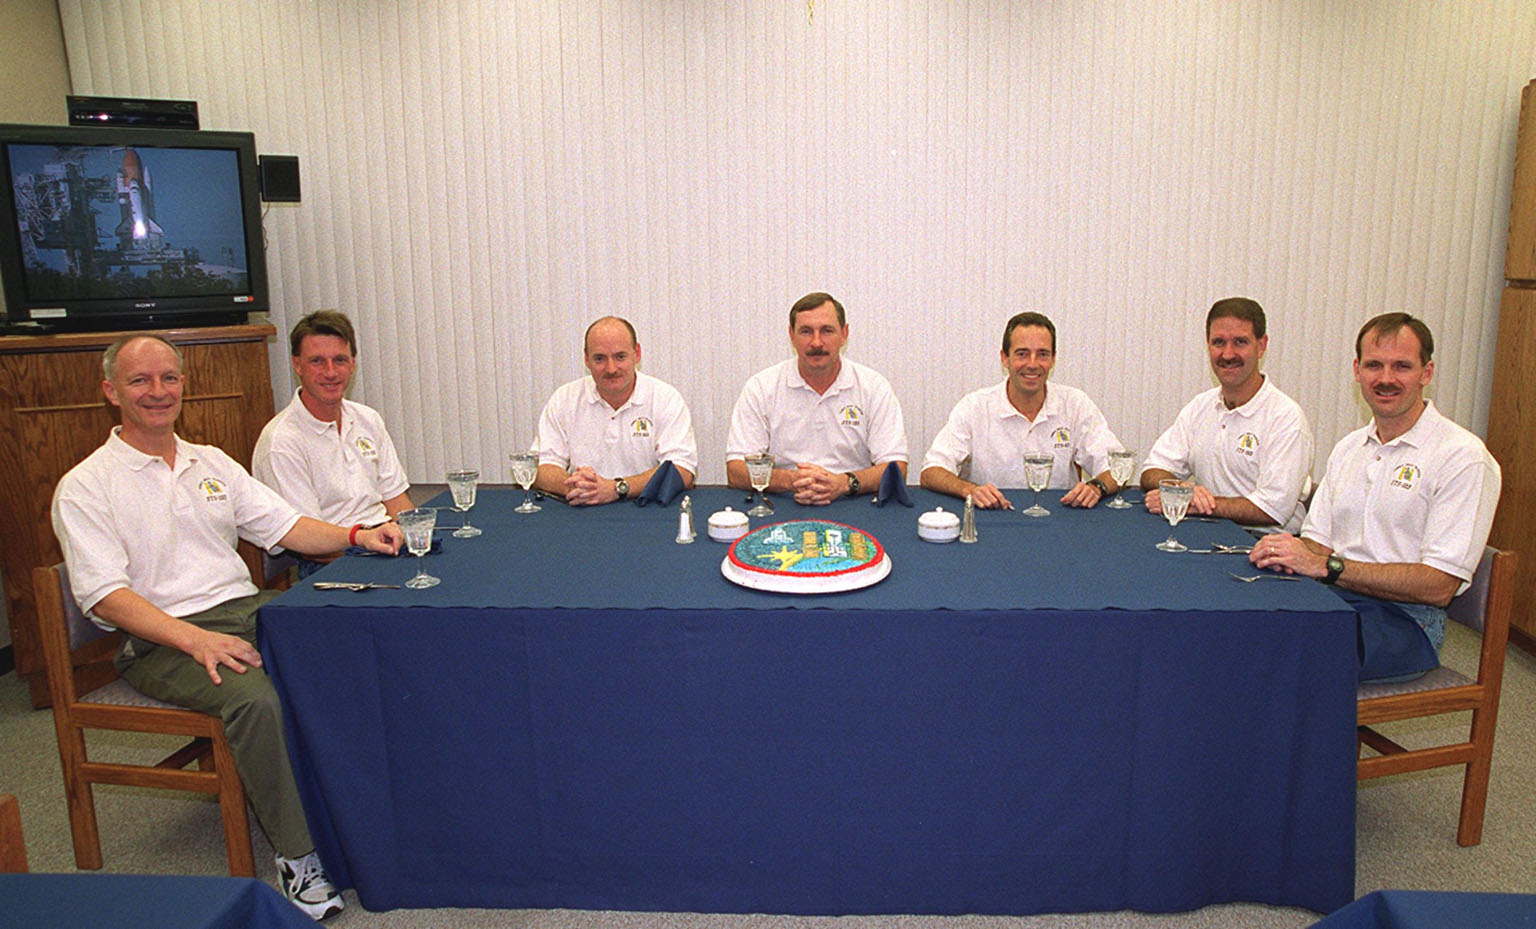 For the second time in two days, the STS-103 crew have breakfast before suiting up for launch. From left are Mission Specialists Claude Nicollier of Switzerland and C. Michael Foale (Ph.D.), Pilot Scott J. Kelly, Commander Curtis L. Brown Jr., and Mission Specialists Jean-Francois Clervoy of France, John M. Grunsfeld (Ph.D.) and Steven L. Smith. Nicollier and Clervoy are with the European Space Agency. The previous launch attempt on Dec. 17 was scrubbed about 8:52 p.m. due to numerous violations of weather launch commit criteria at KSC. The mission, to service the Hubble Space Telescope, is now scheduled for launch Dec. 19 at 7:50 p.m. EST from Launch Pad 39B. Mission objectives include replacing gyroscopes and an old computer, installing another solid state recorder, and replacing damaged insulation in the telescope. After the 7-day, 21-hour mission, Discovery is expected to land at KSC Monday, Dec. 27, at about 5:24 p.m. EST